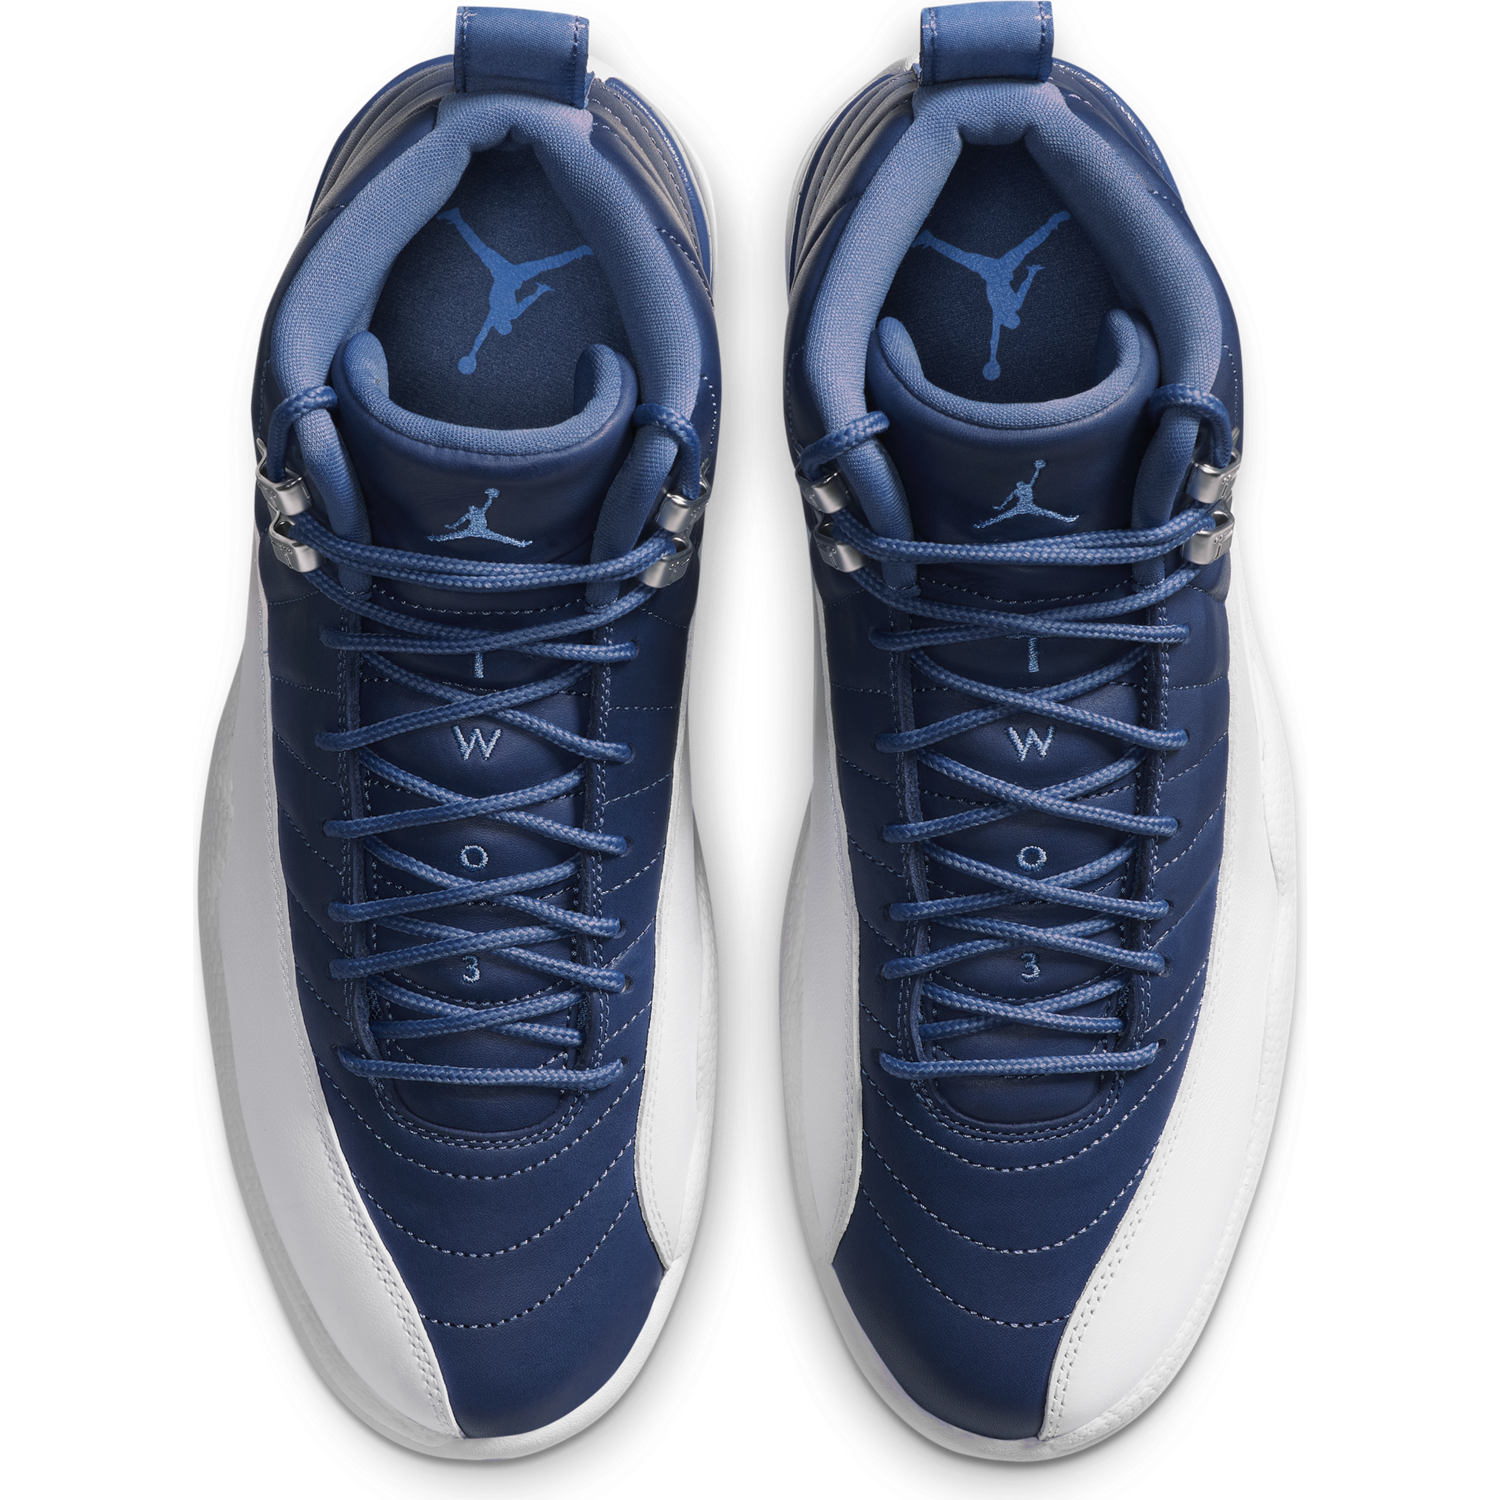 AIR JORDAN M'S FOOTWEAR JORDAN 12 RETRO - STONE BLUE